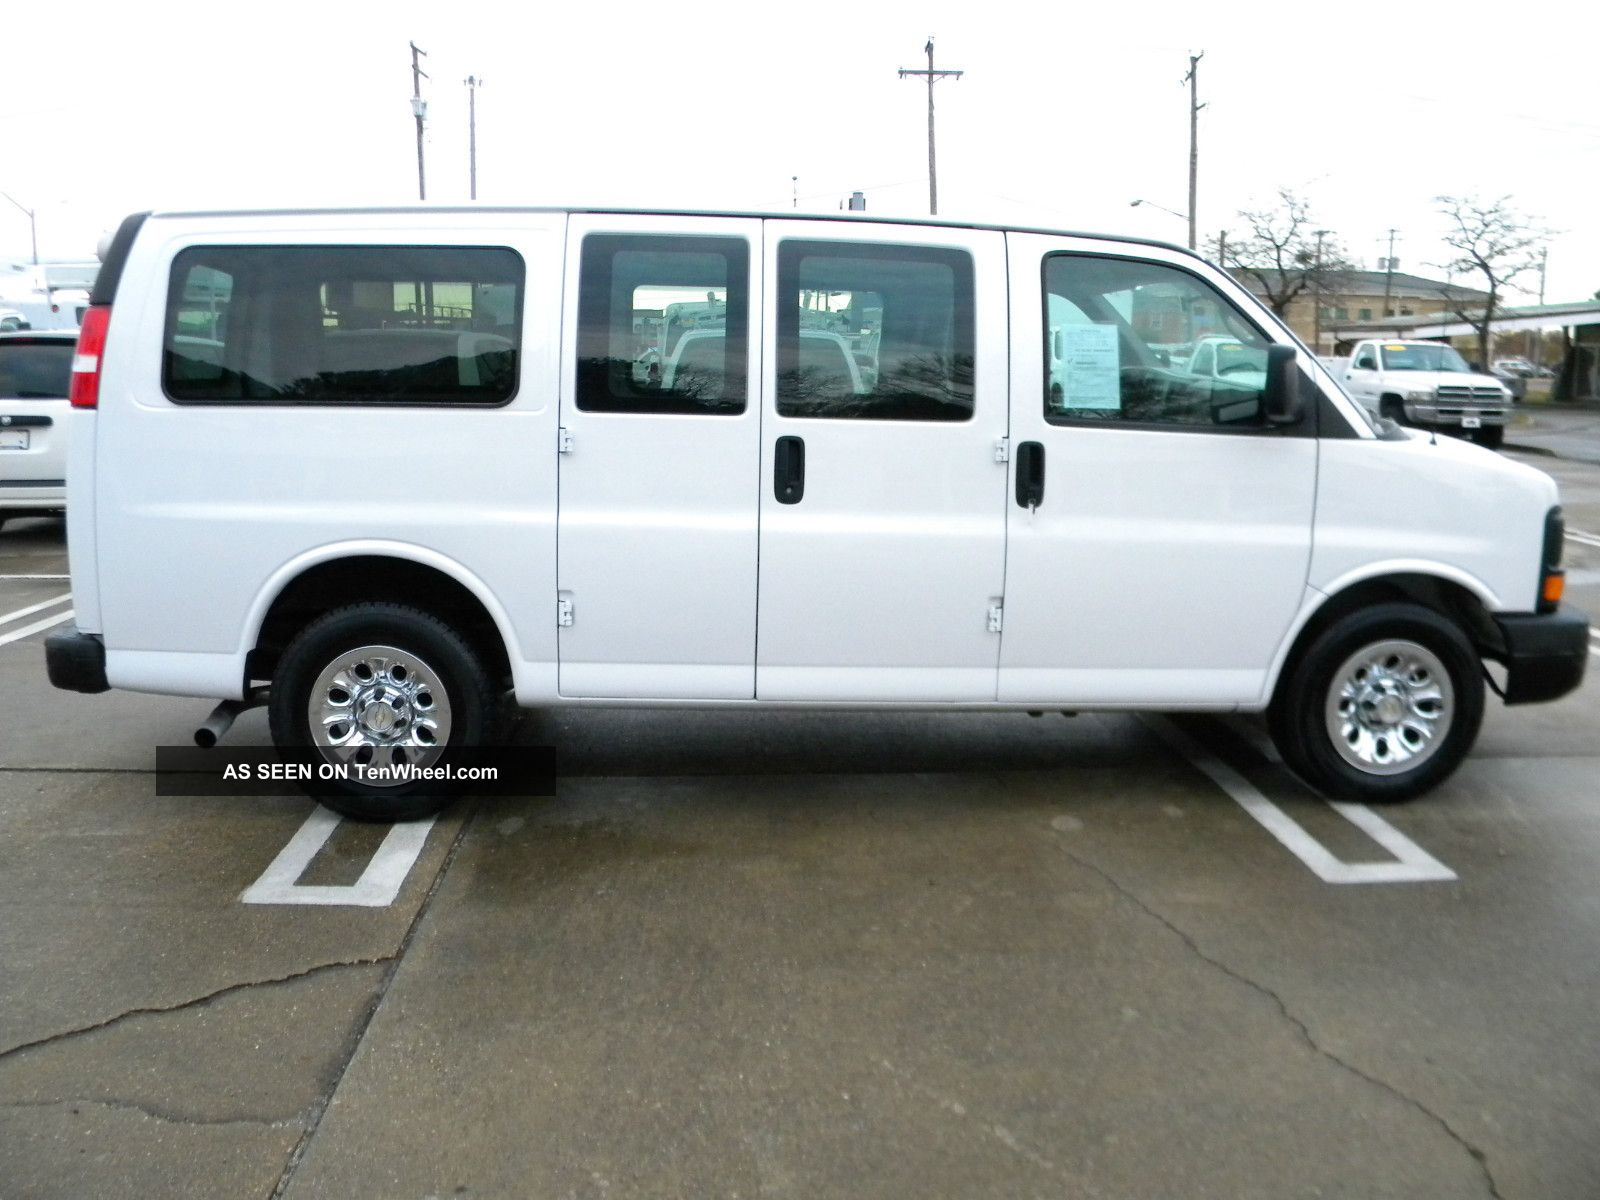 2010 chevrolet express g1500 awd cargo van in va. Black Bedroom Furniture Sets. Home Design Ideas